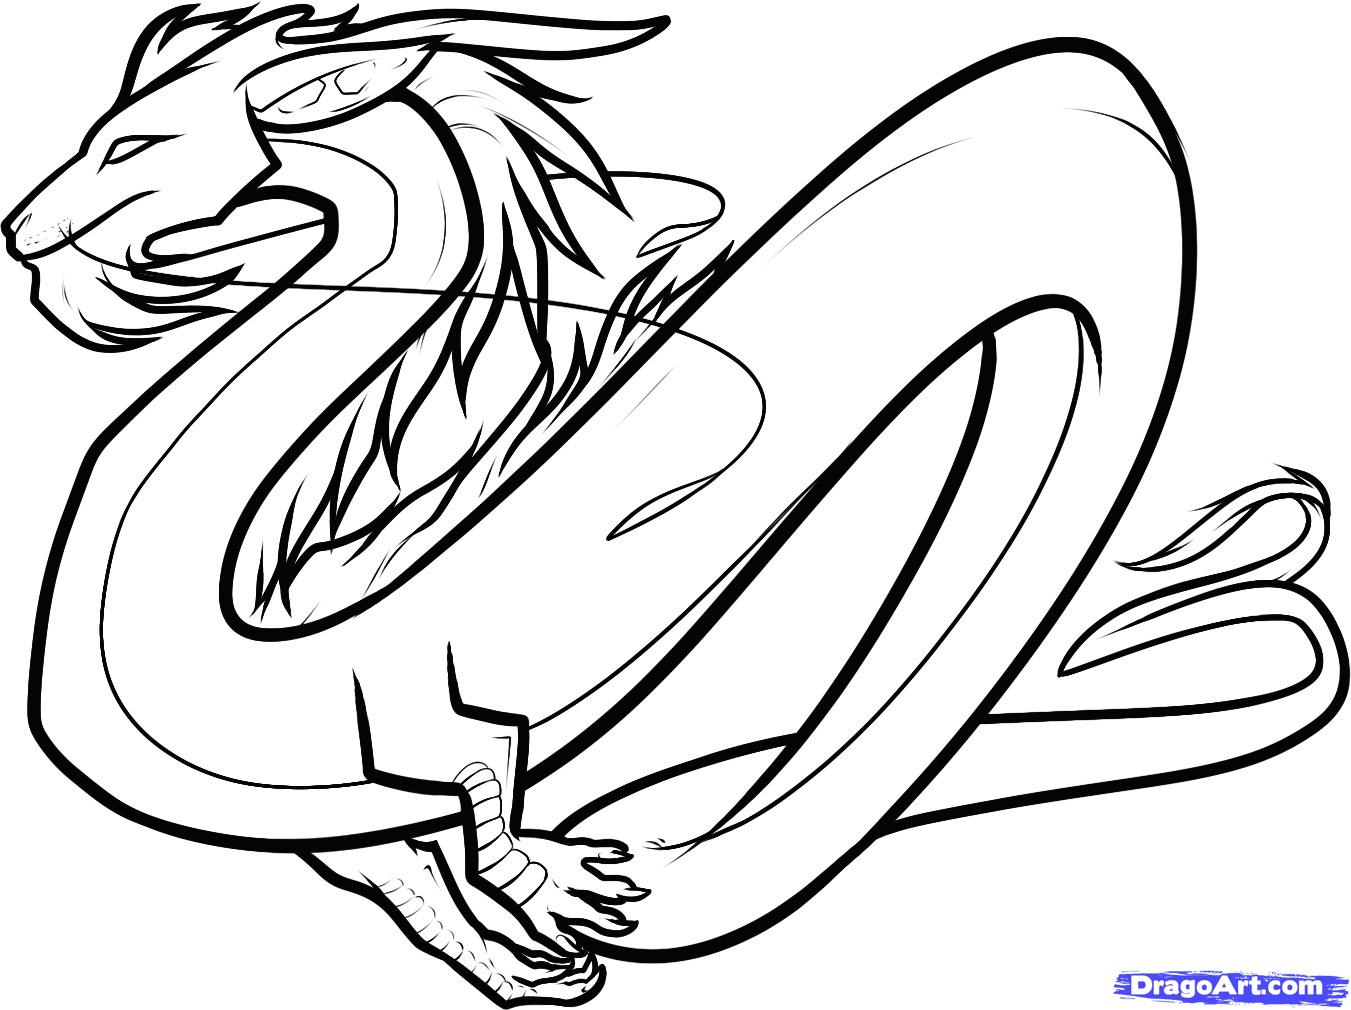 1351x1010 Chinese Dragon Drawing For Kids How To Draw A Light Dragon White